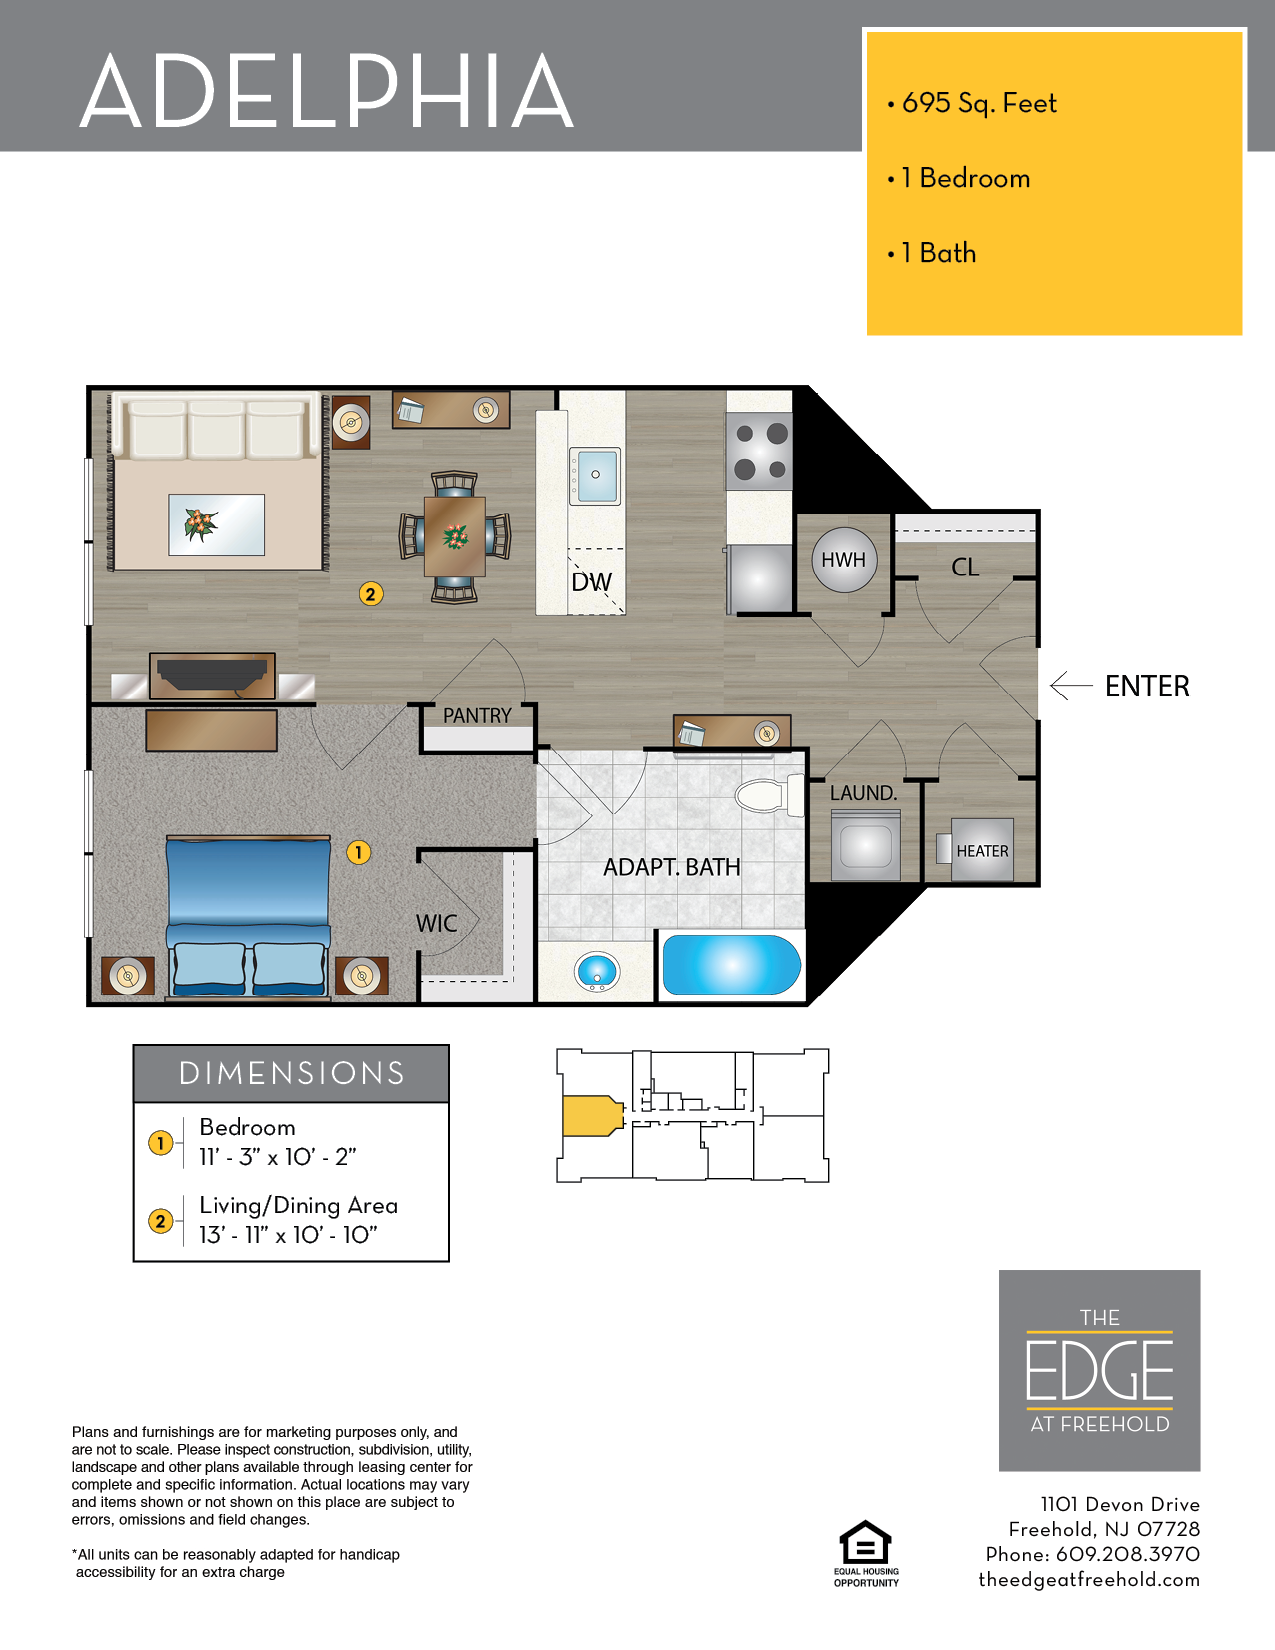 Adelphia Floor Plan